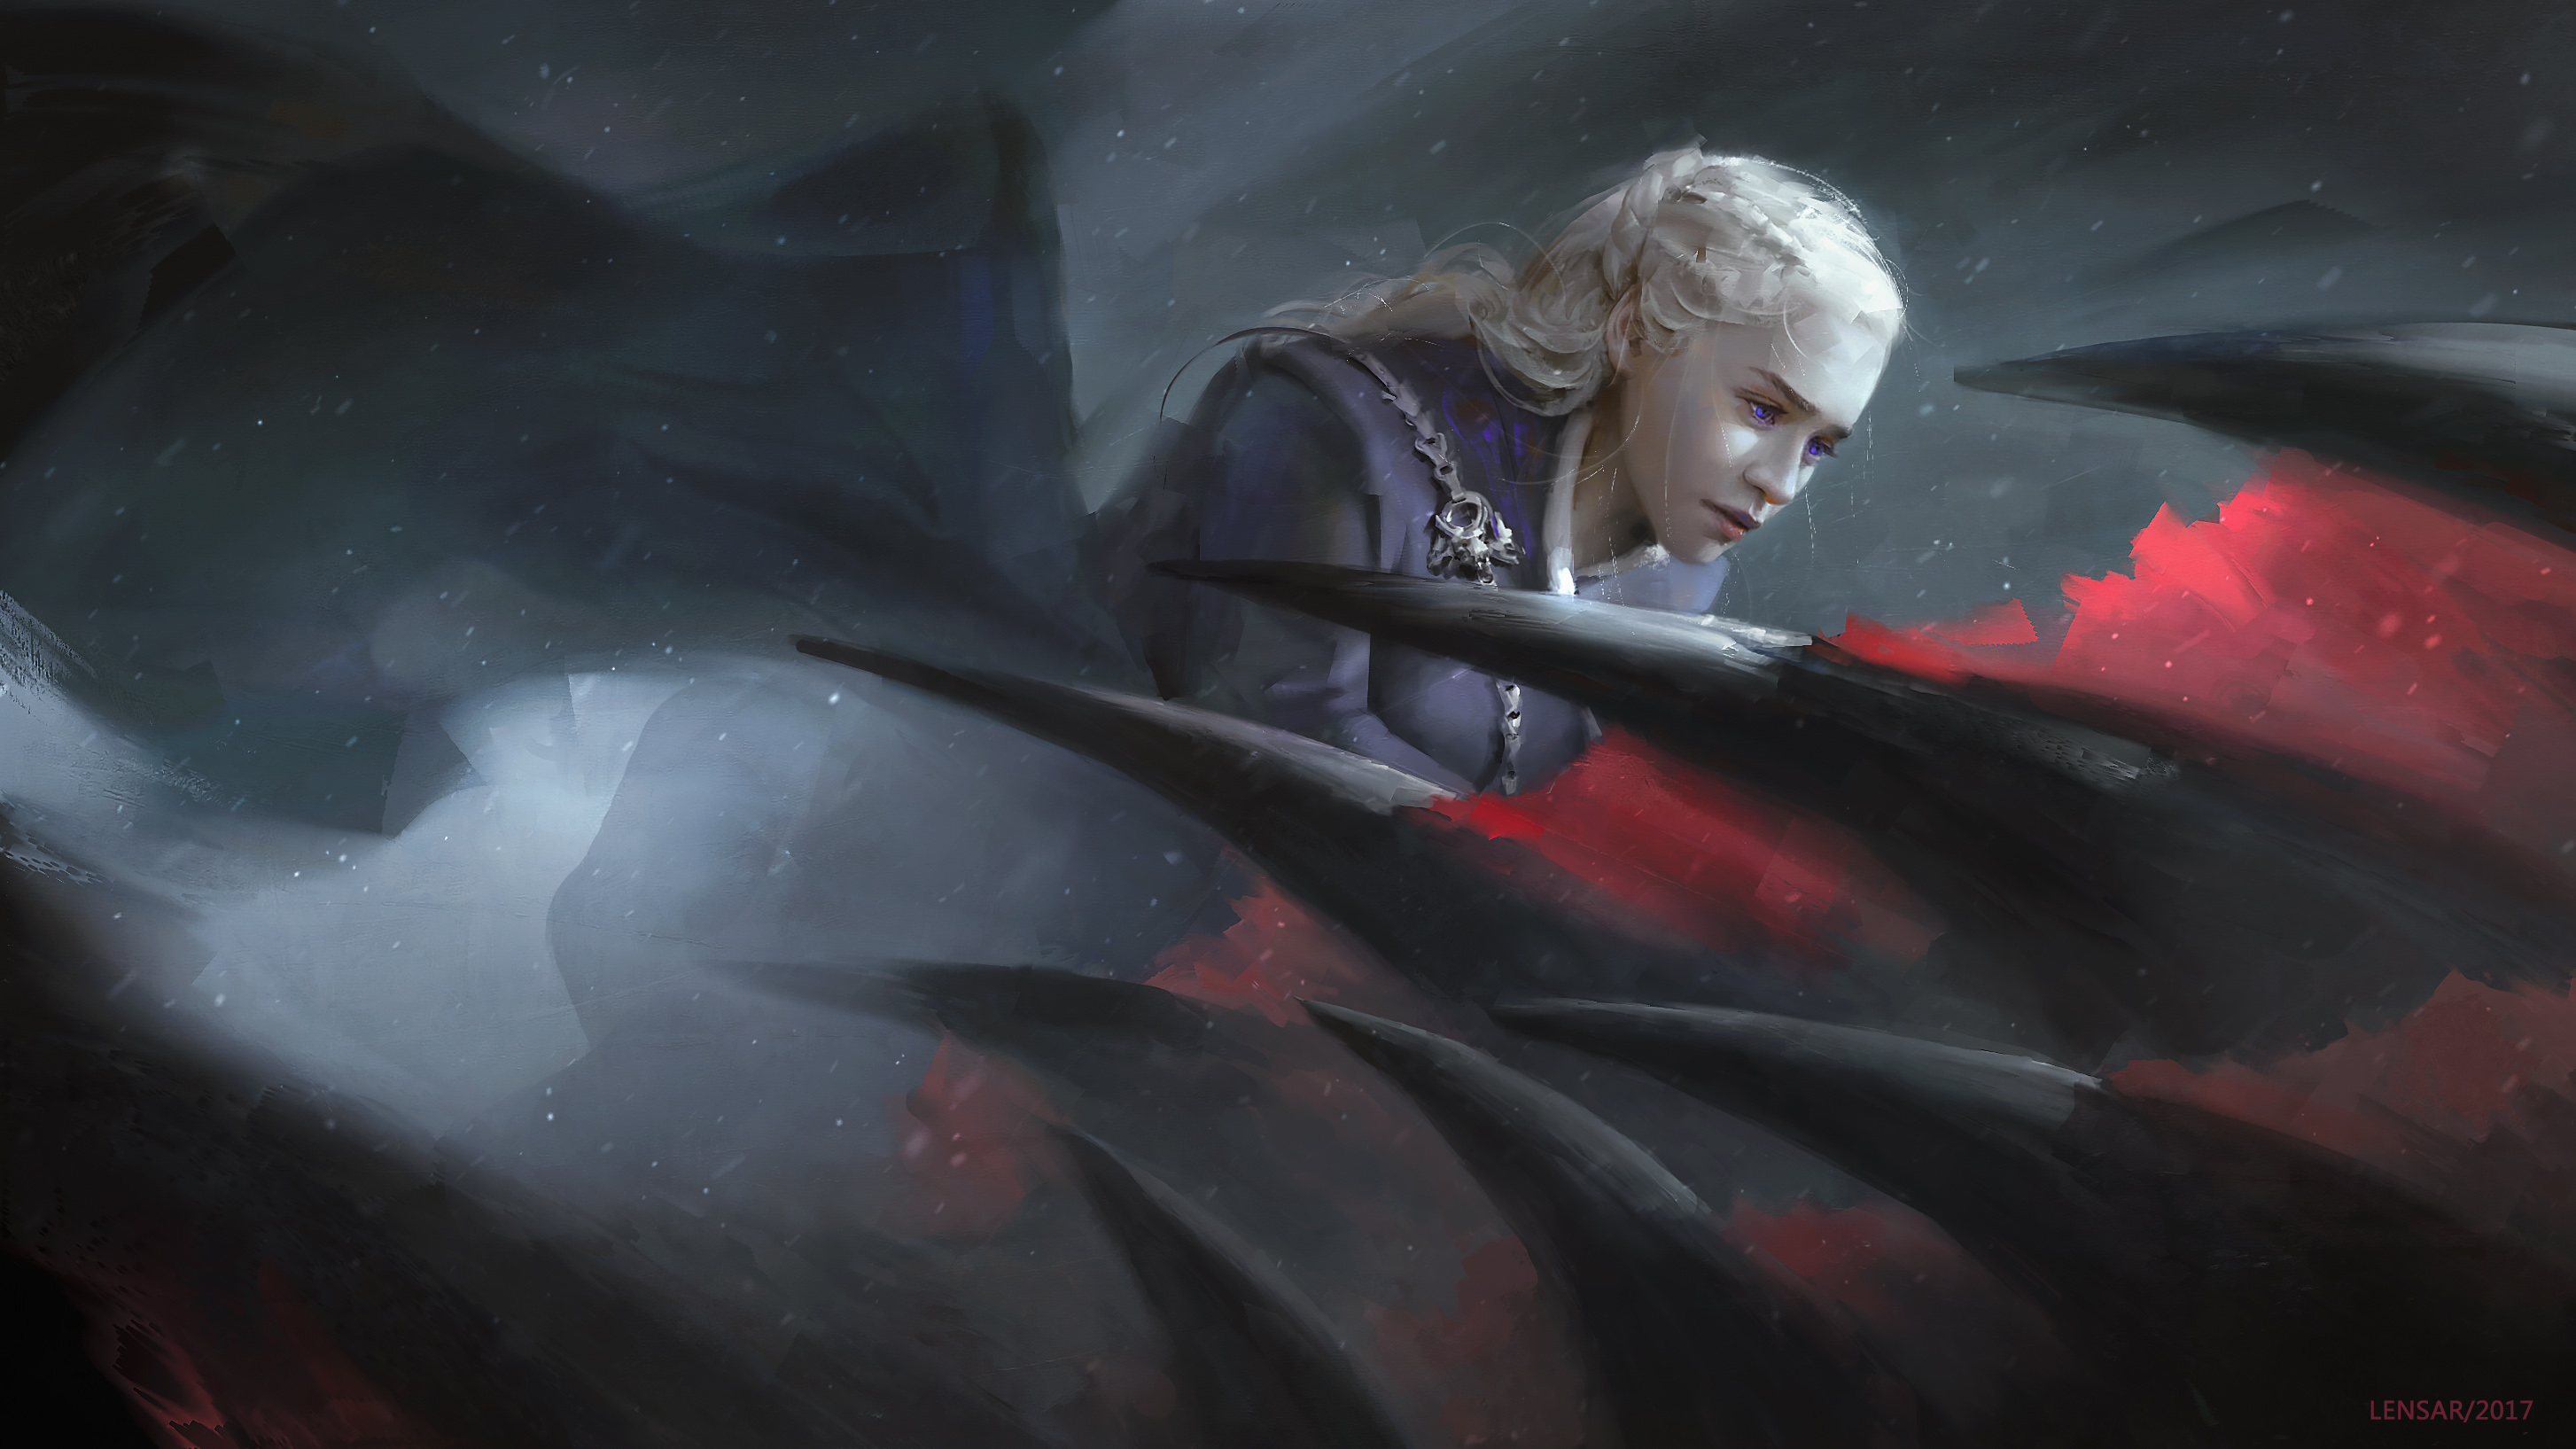 Game Of Thrones 1920x1080 Wallpapers  Full HD wallpaper